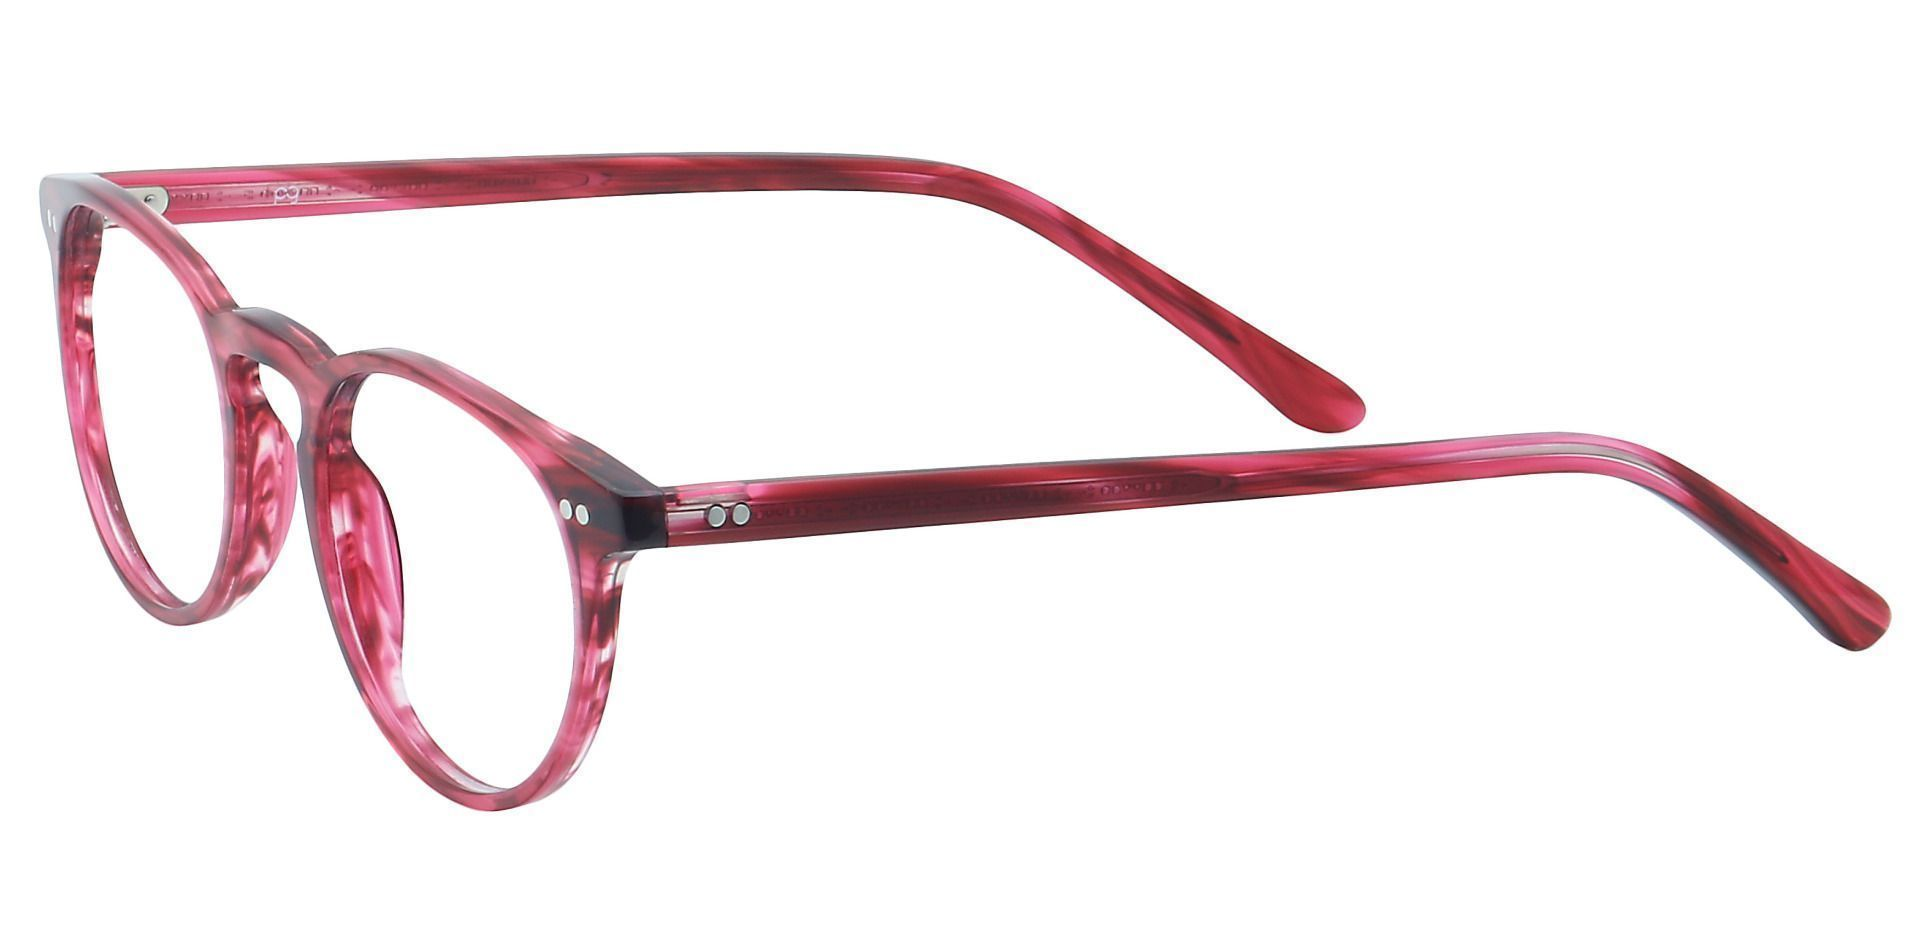 Marley Oval Lined Bifocal Glasses - Red